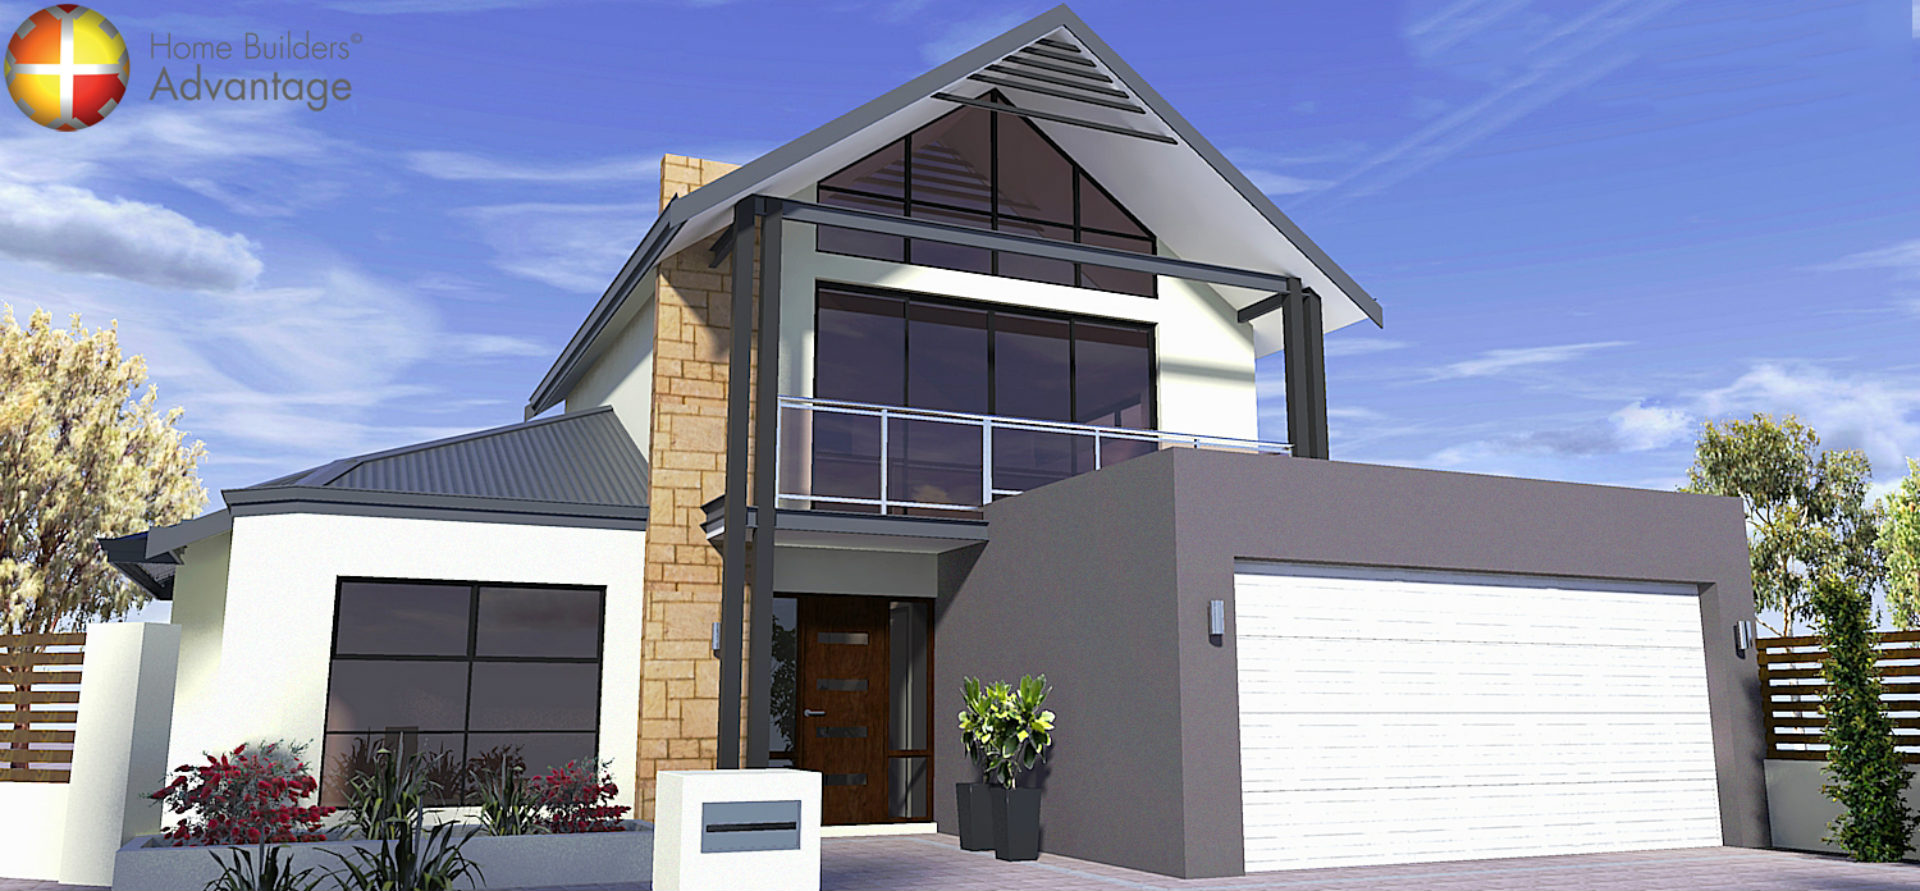 Front elevation two storey loft design with raking windows for Loft home designs perth